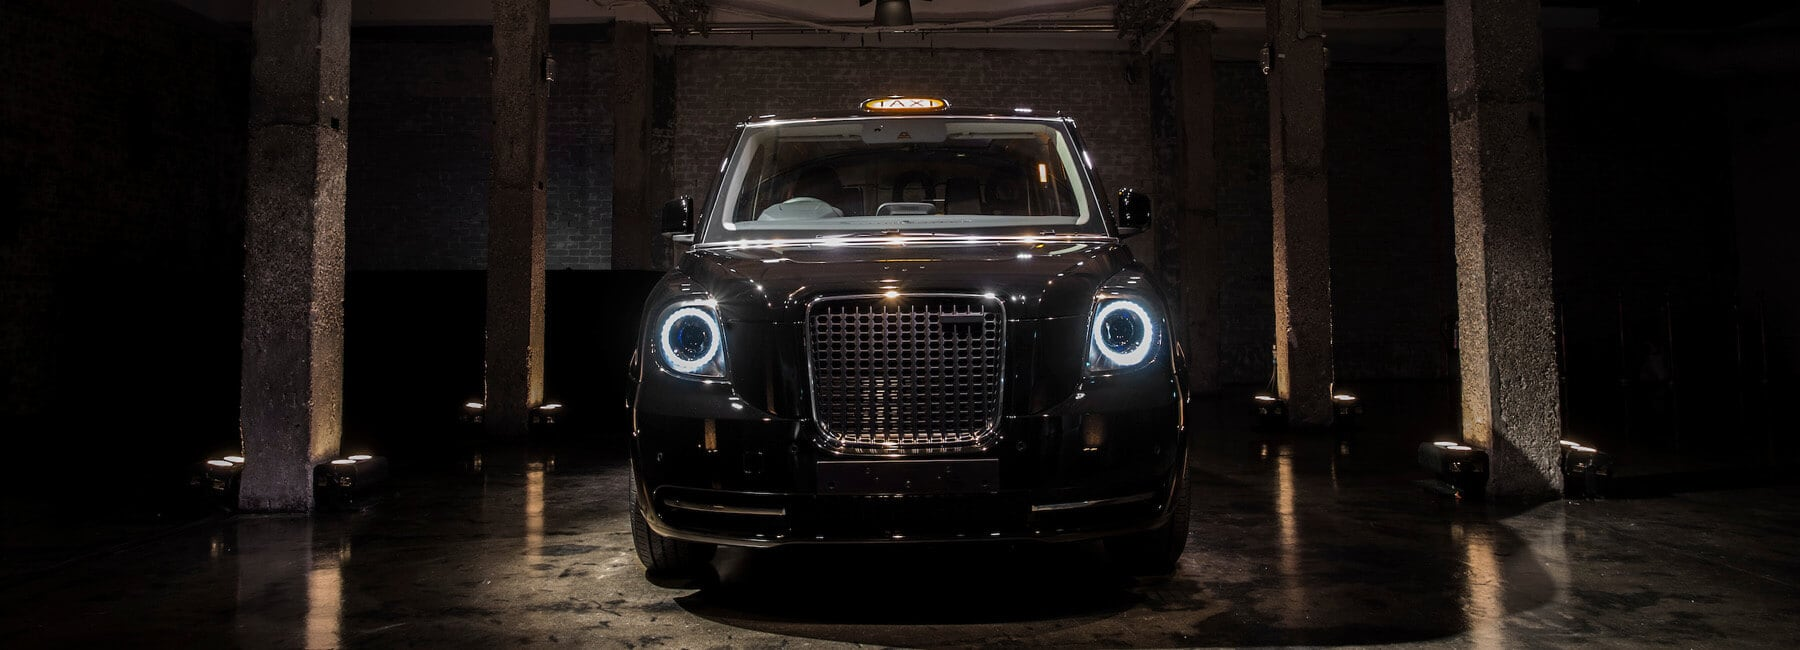 london electric vehicle company electric taxi fy 1